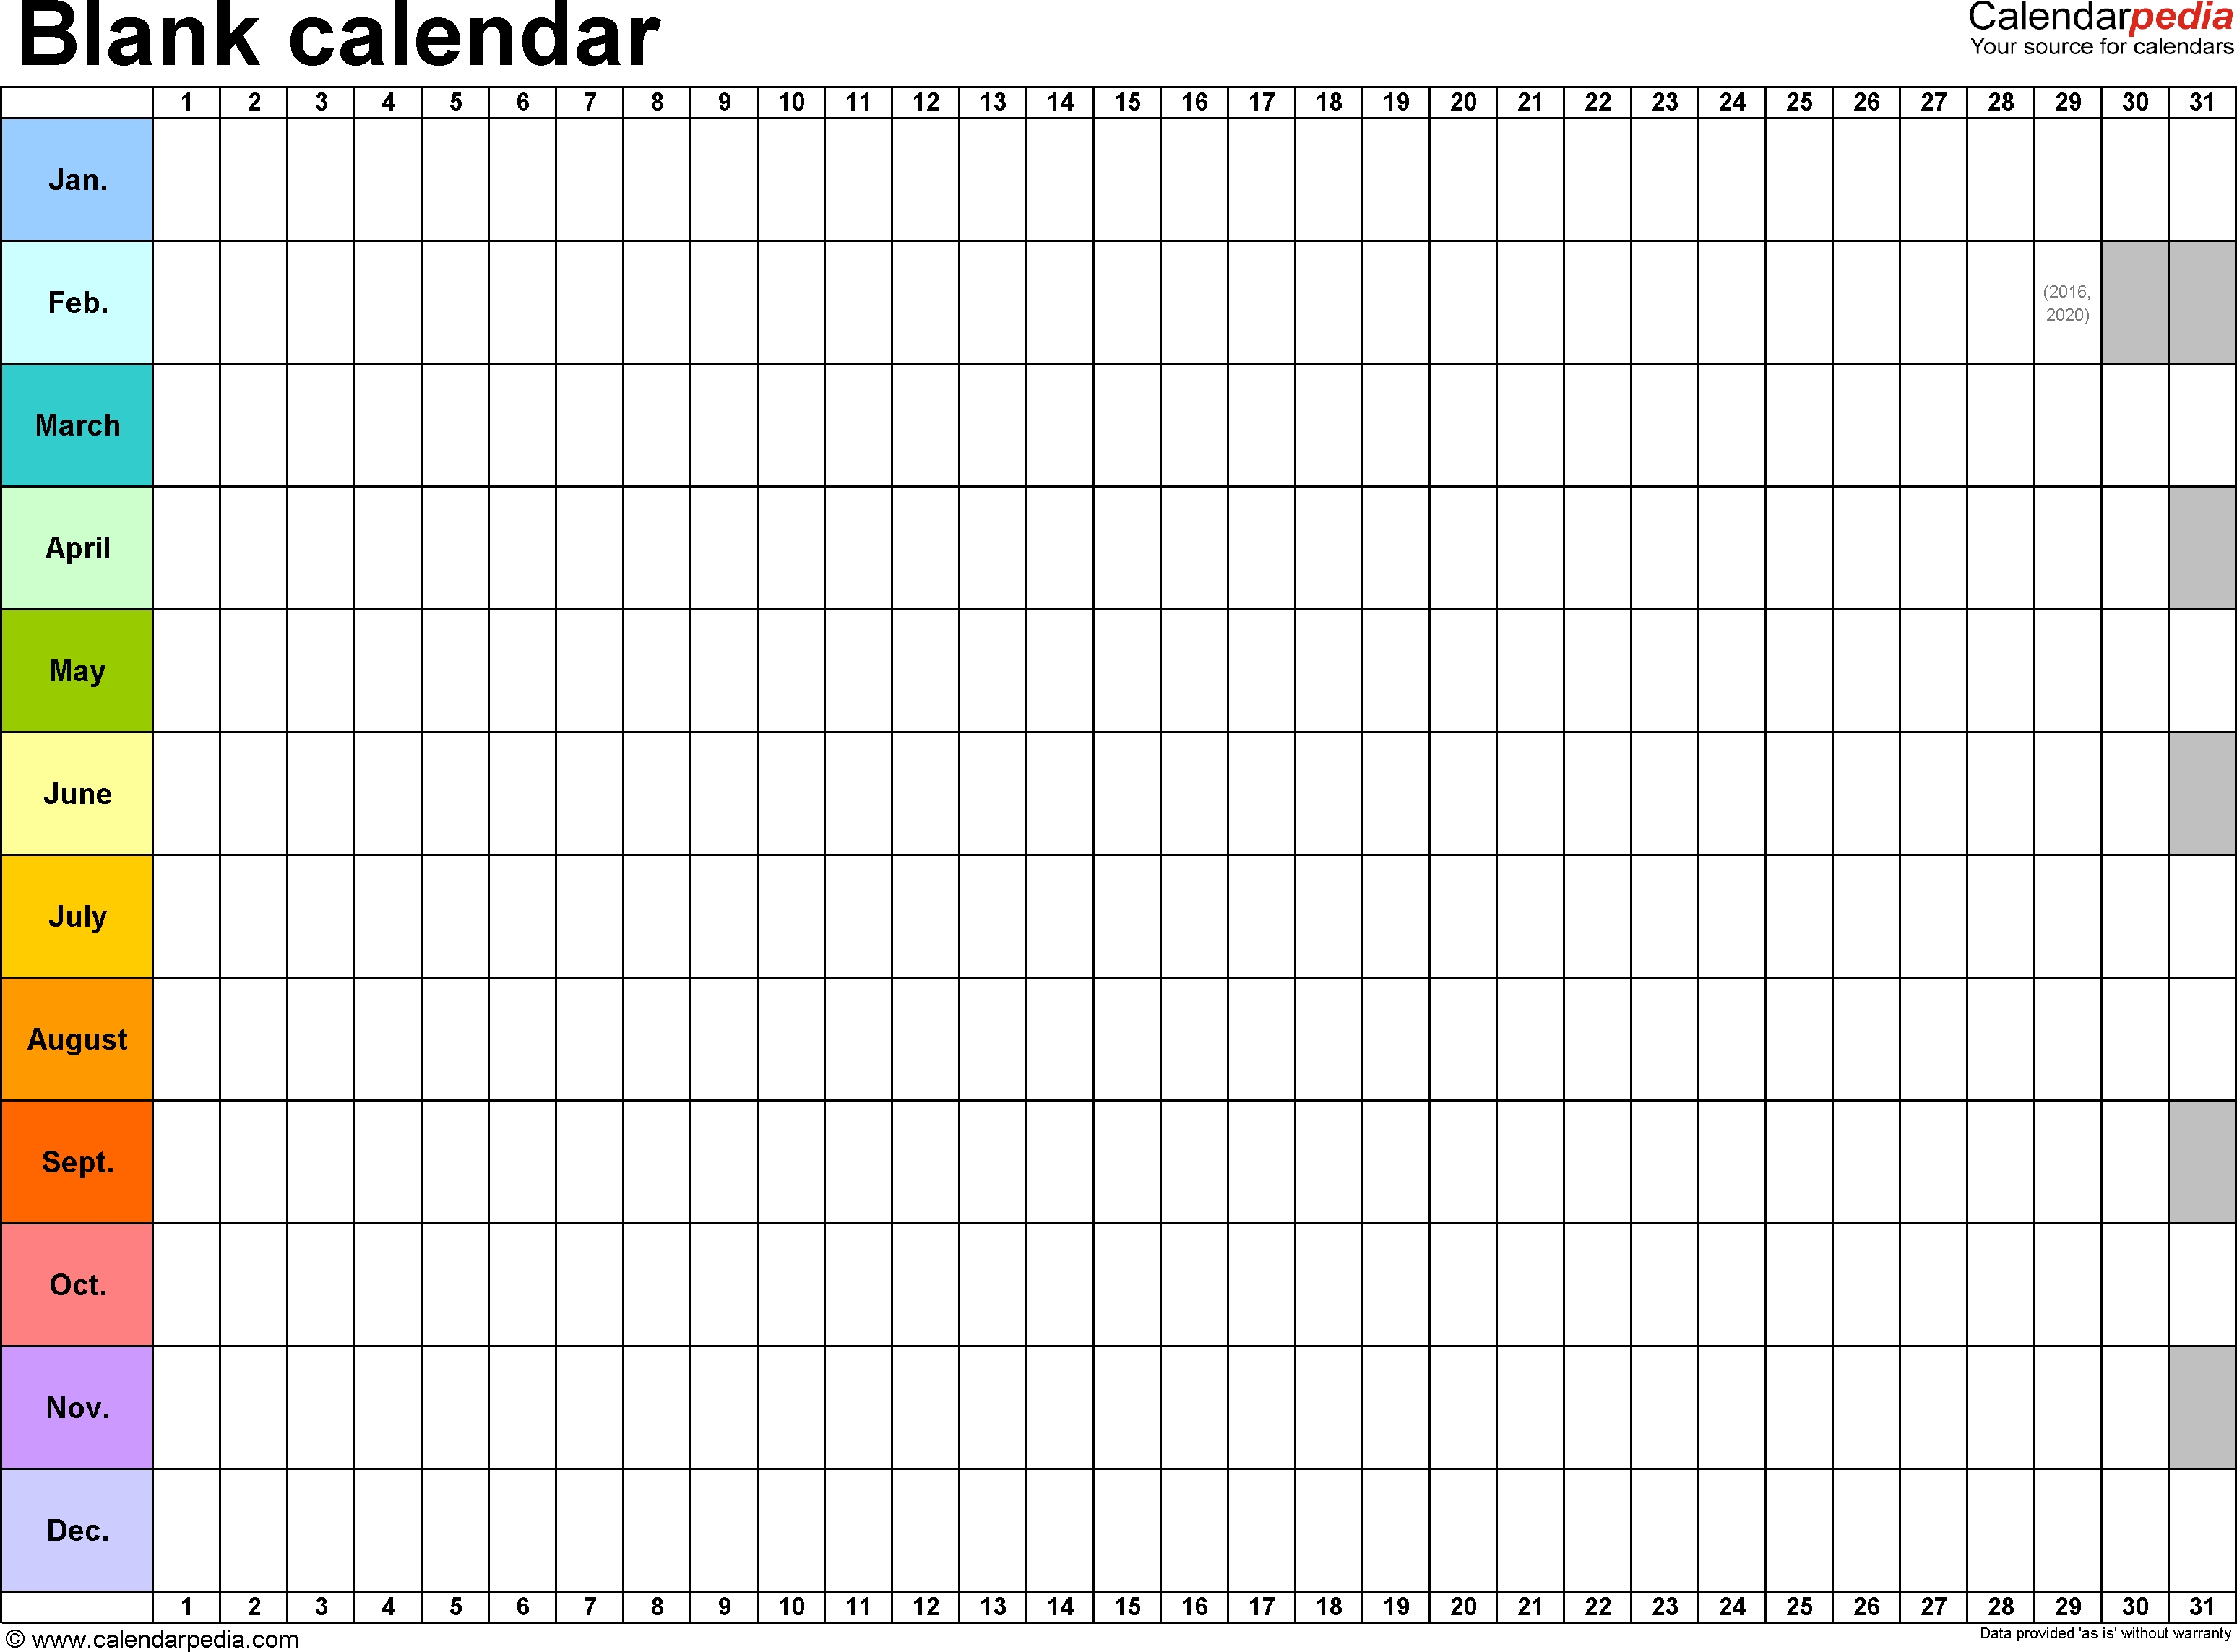 Blank Calendar - 9 Free Printable Microsoft Word Templates throughout Fill In Printable Monthly Calendar